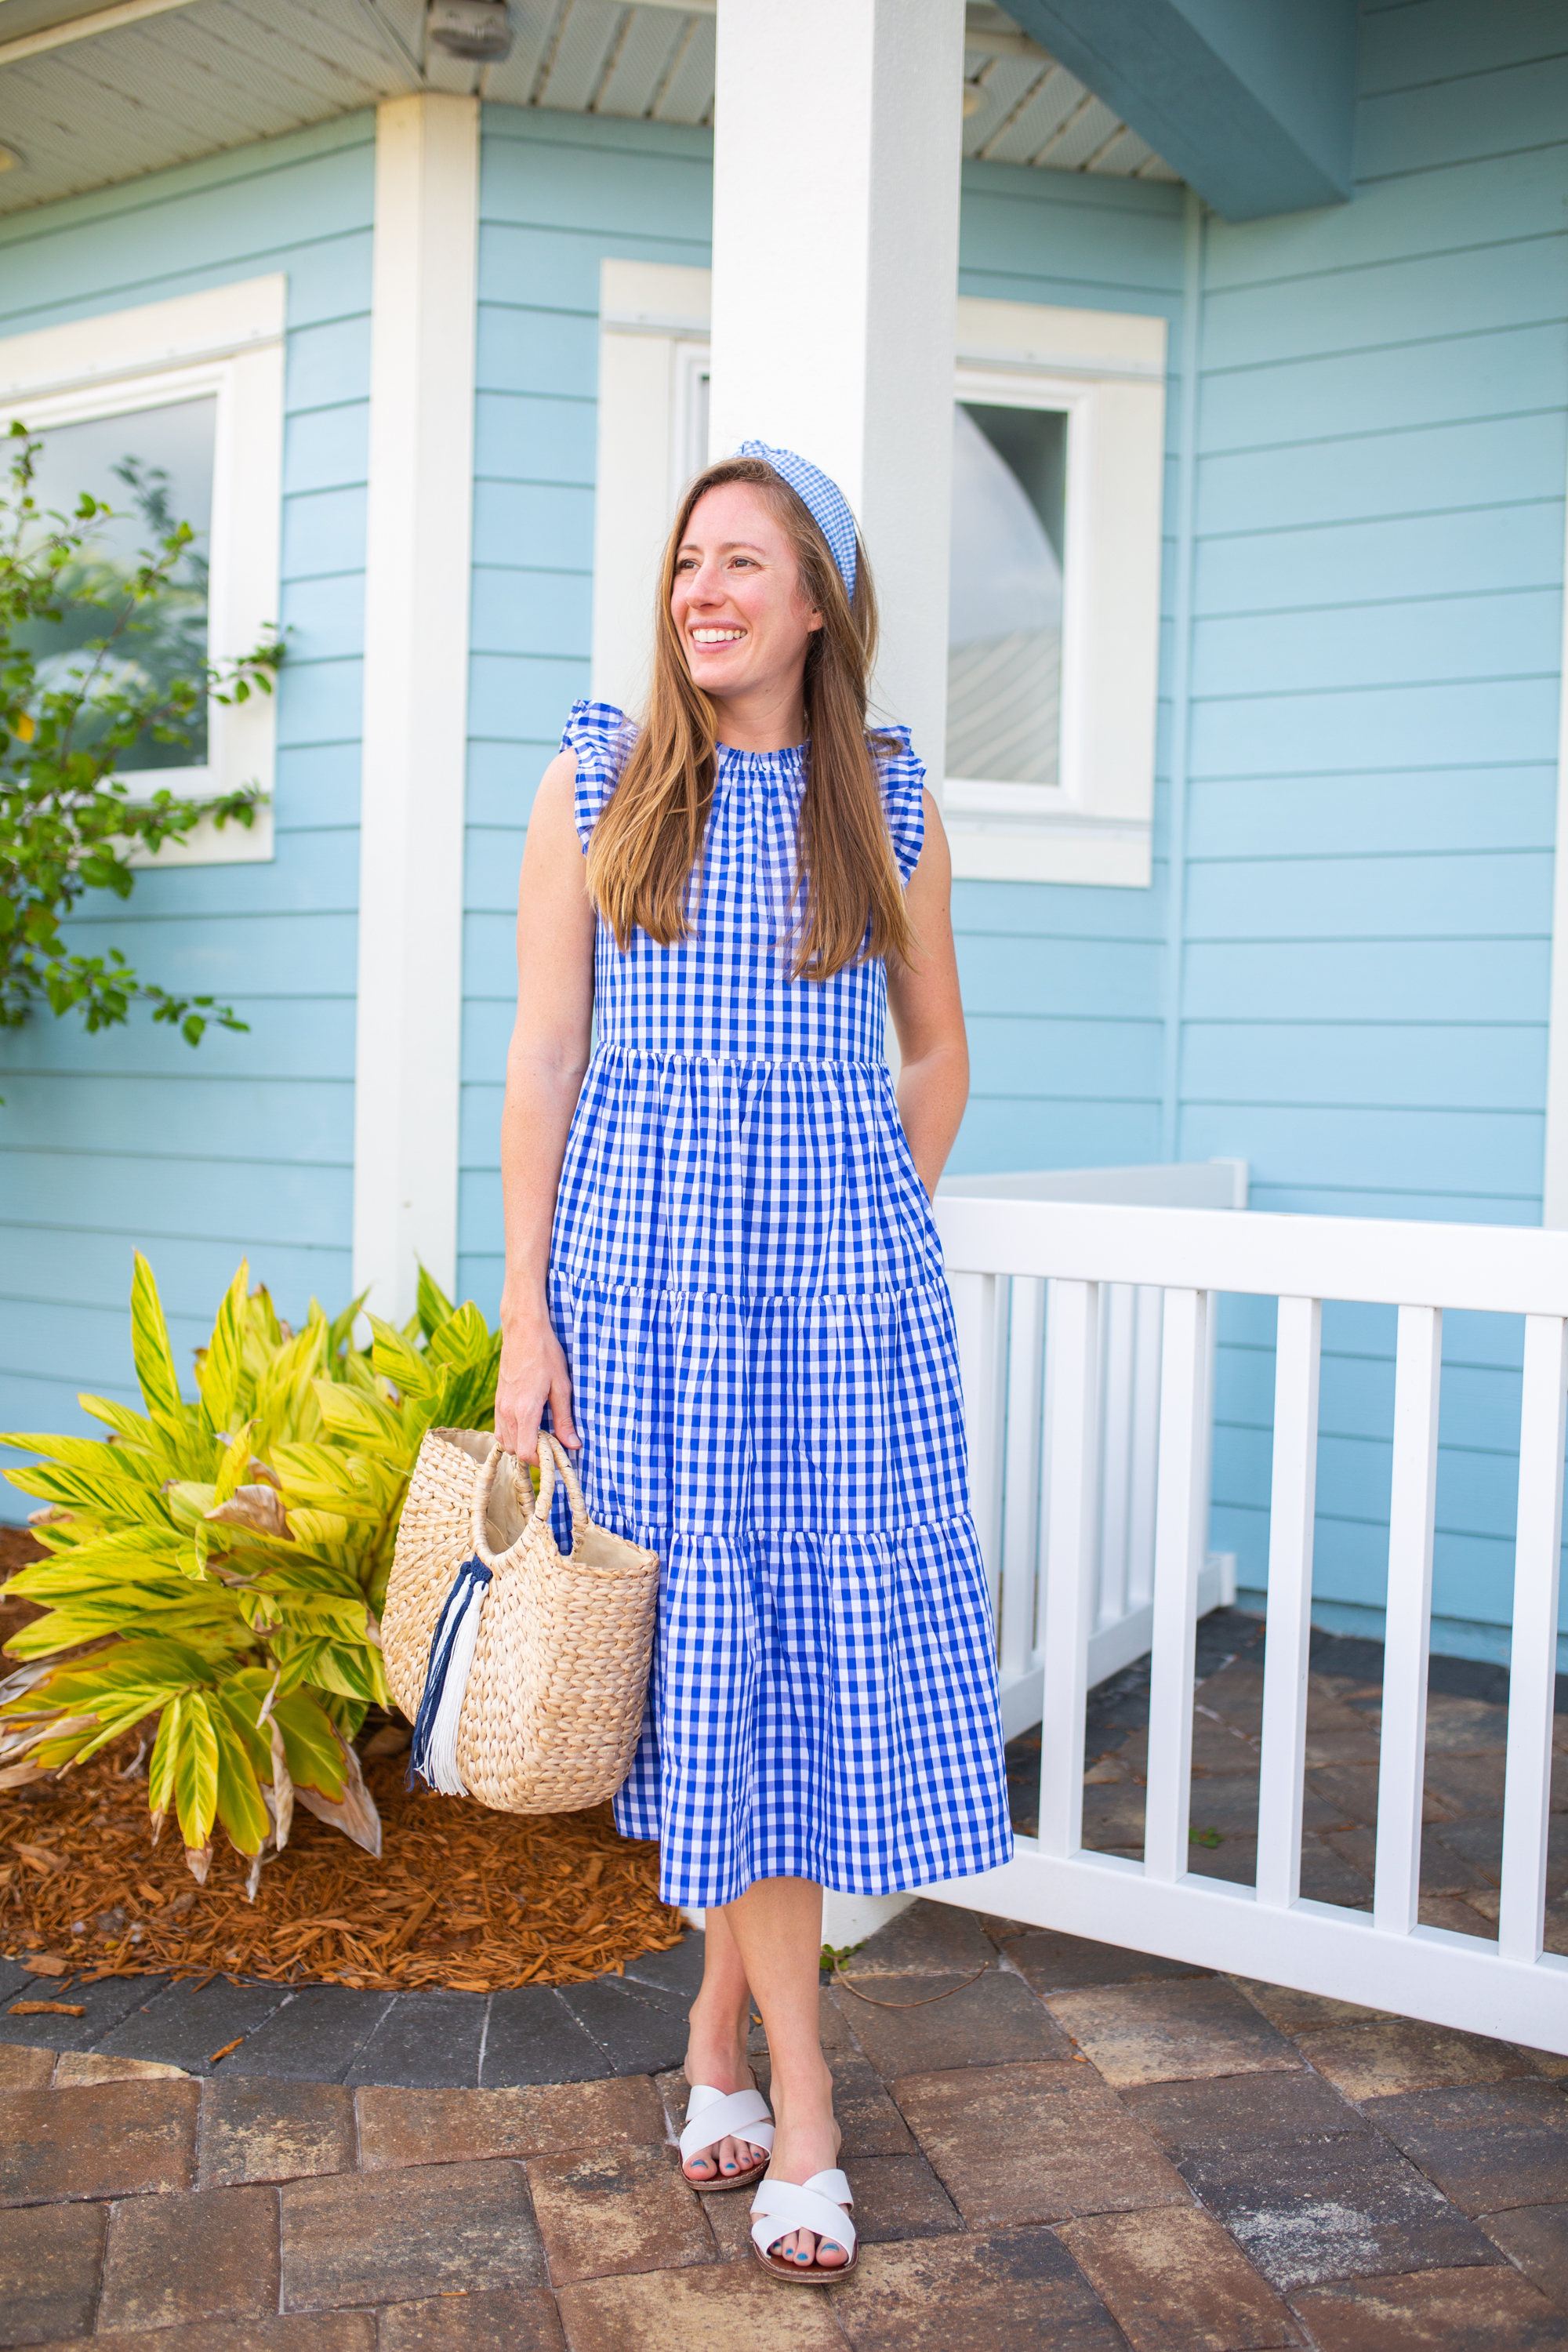 woman wearing a white sandals, holding a bag, and wearing J.Crew Gingham Tiered Dress